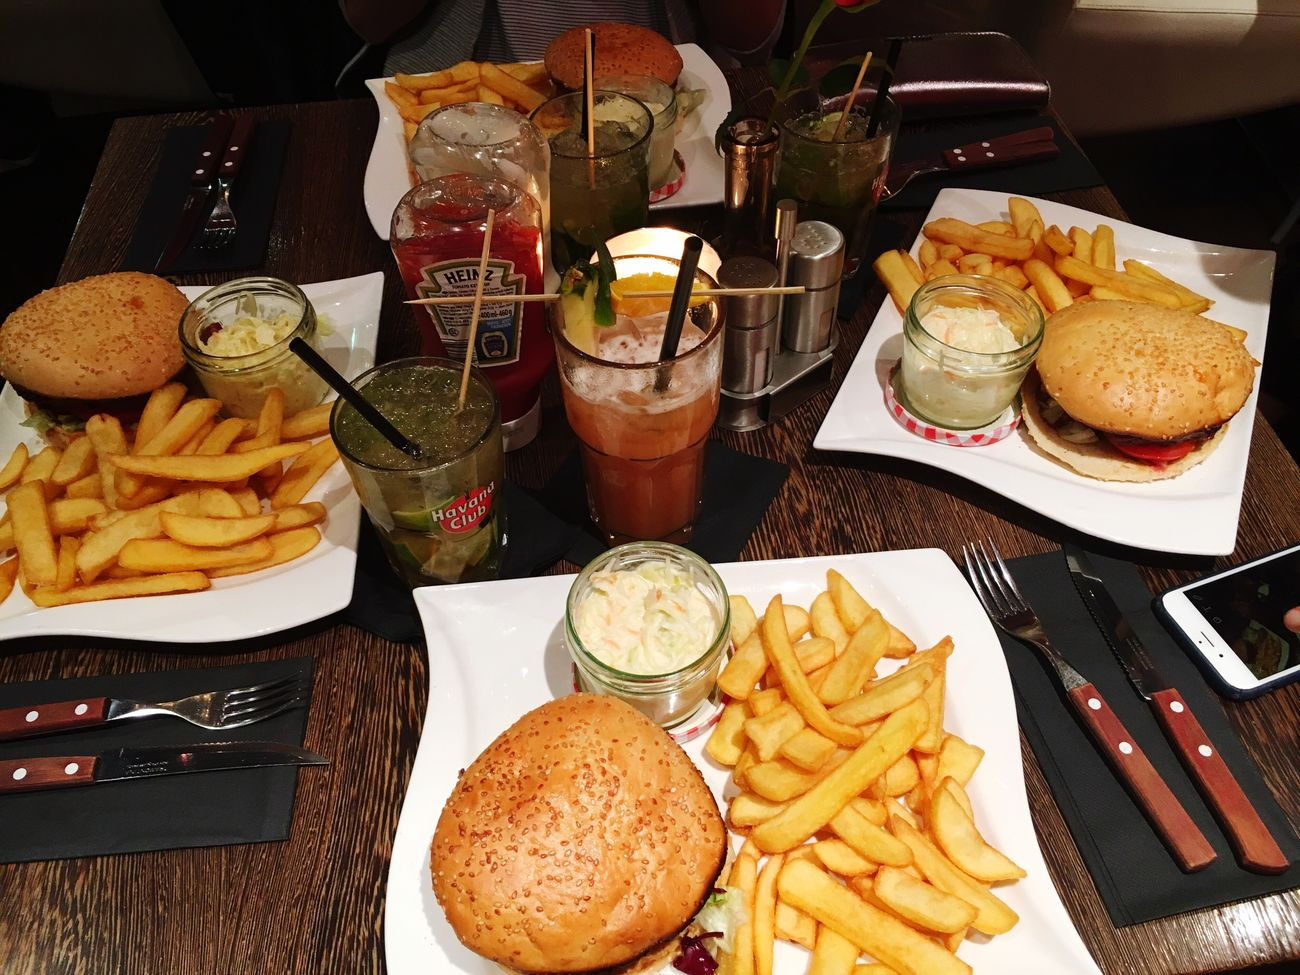 Mmmm. 🍔❤️ Food Ready-to-eat Food And Drink Burger Cocktails Girl Foodporn Enjoying Life Hello World Steakhouse Gernany Fries! Yummy Table Plate Drink Fast Food Yesterday Love Lifestyles Light And Shadow Check This Out Beautiful Taking Photos 2016